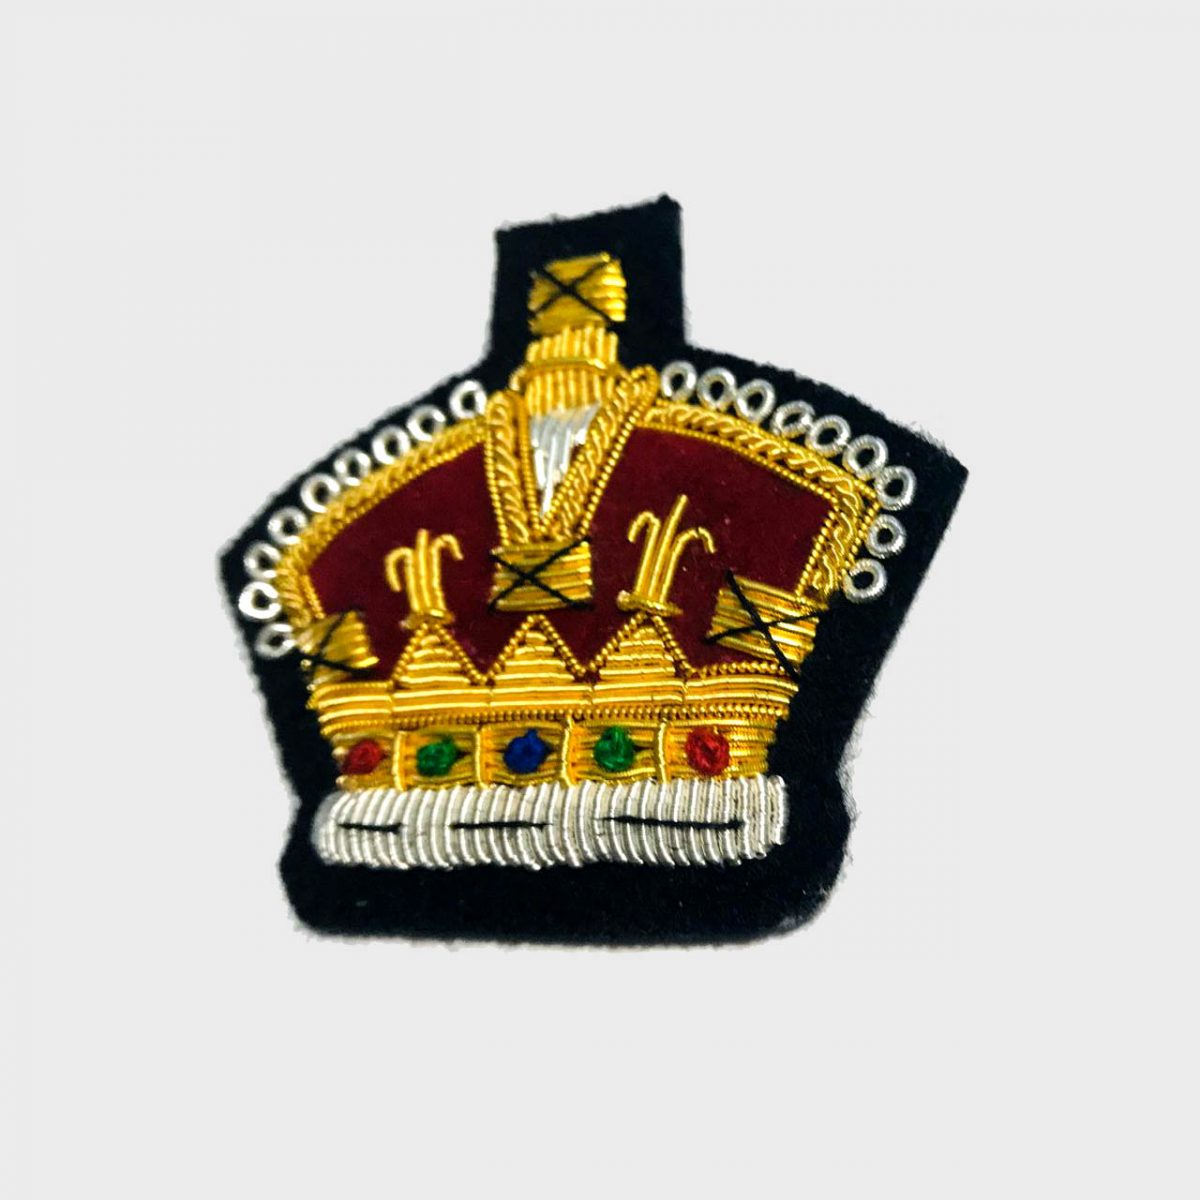 Crown Bullion Embroidered Blazer Crest Patch - Fashionable 3D embroidered Crown CrestMade by skilled artisansBullion wire hand Stitched on Black colour FeltSize is approx 2x2 inchessew-on backing only 8